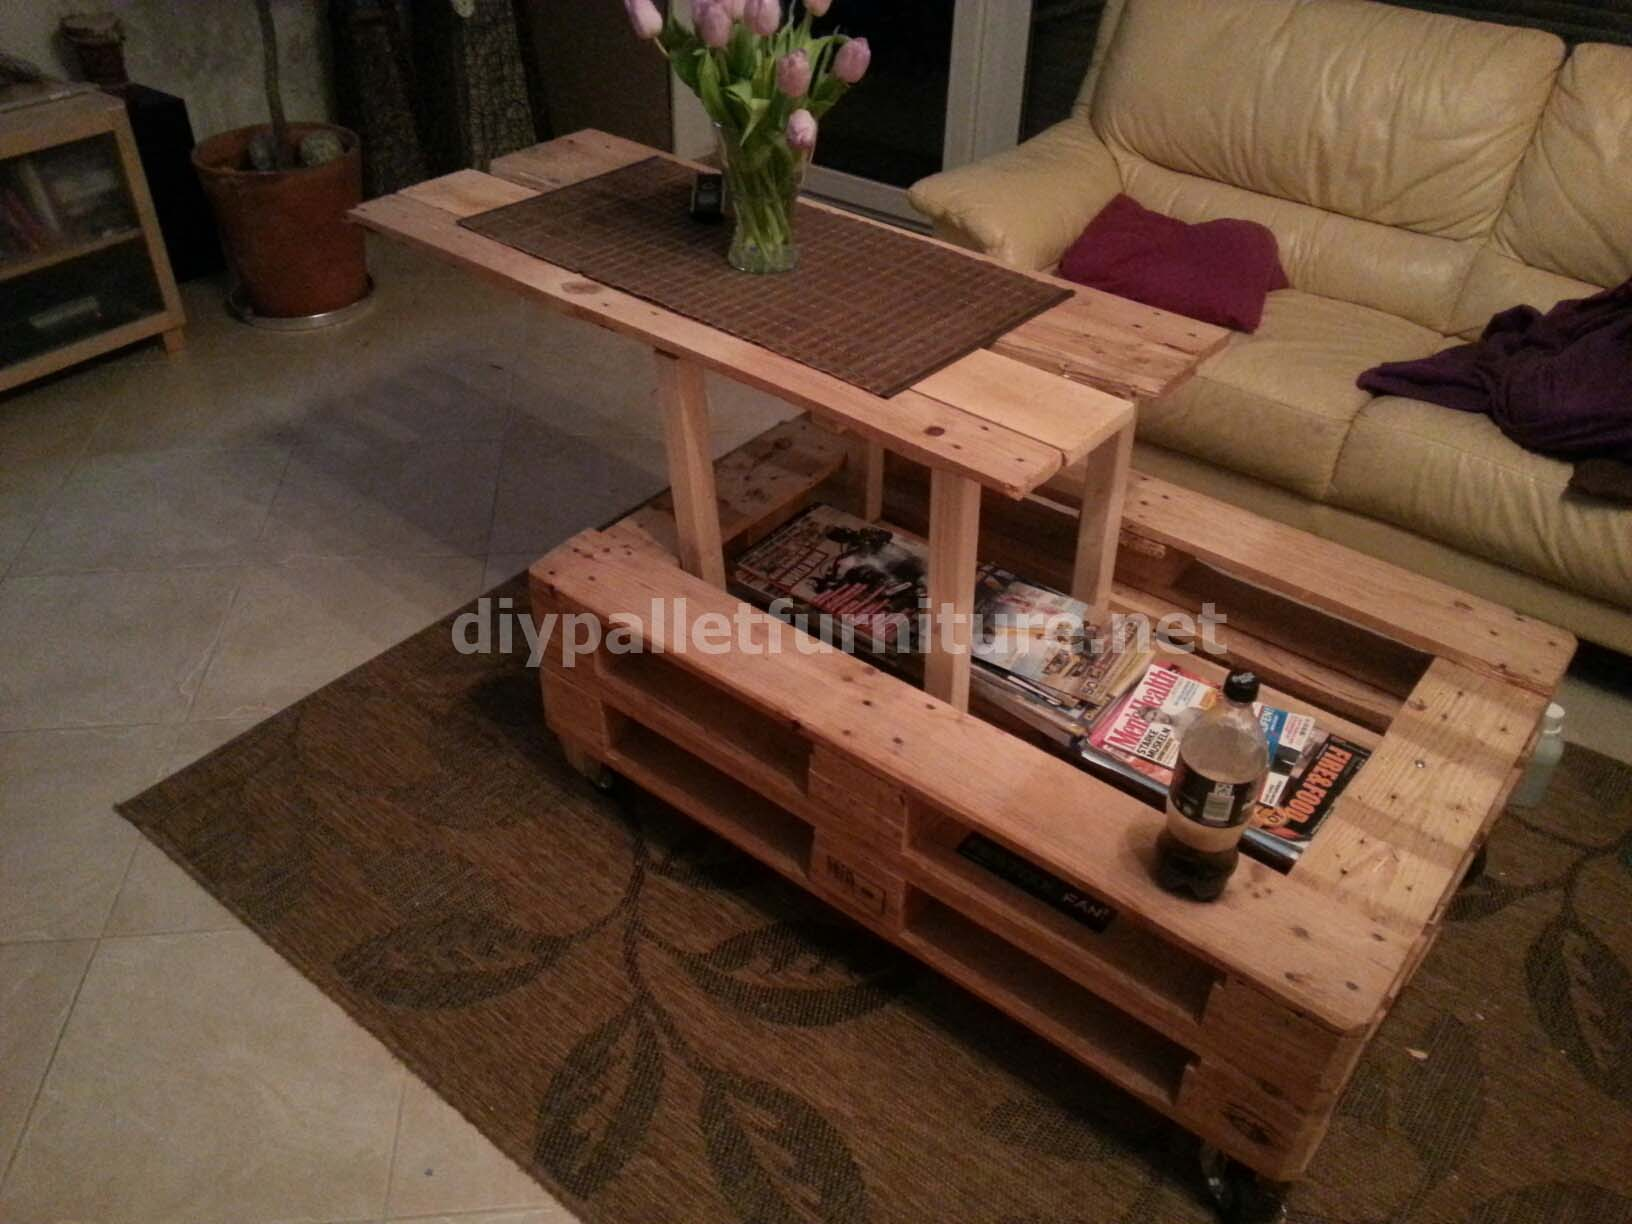 Pneumatic pallet tablediy pallet furniture diy pallet for Palette table de jardin